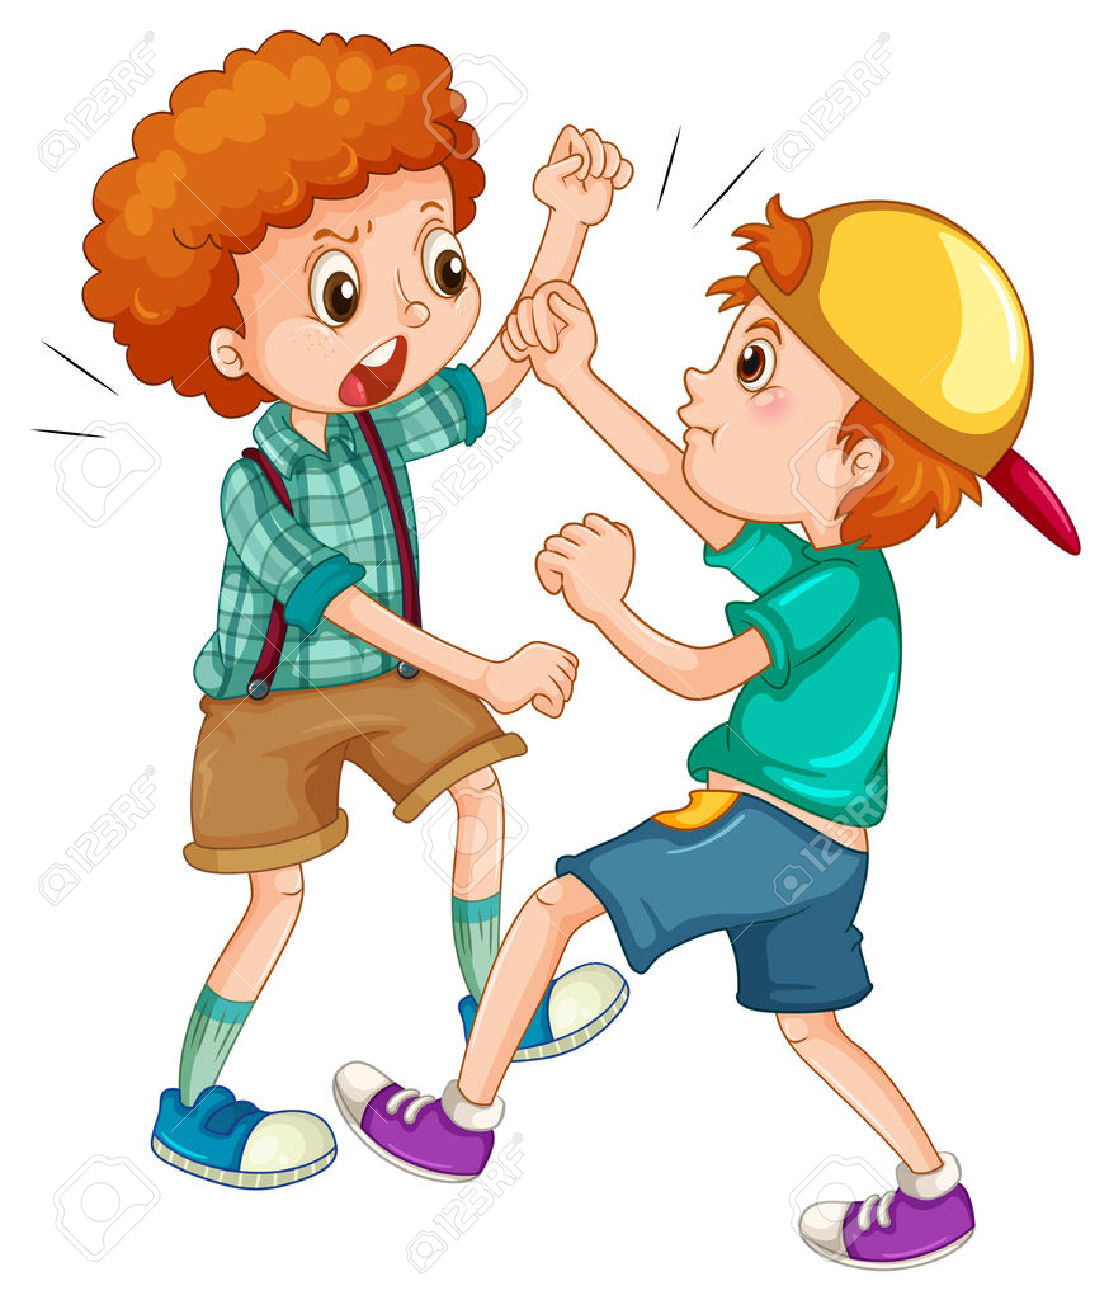 people fighting: Two boys fighting each other illustration